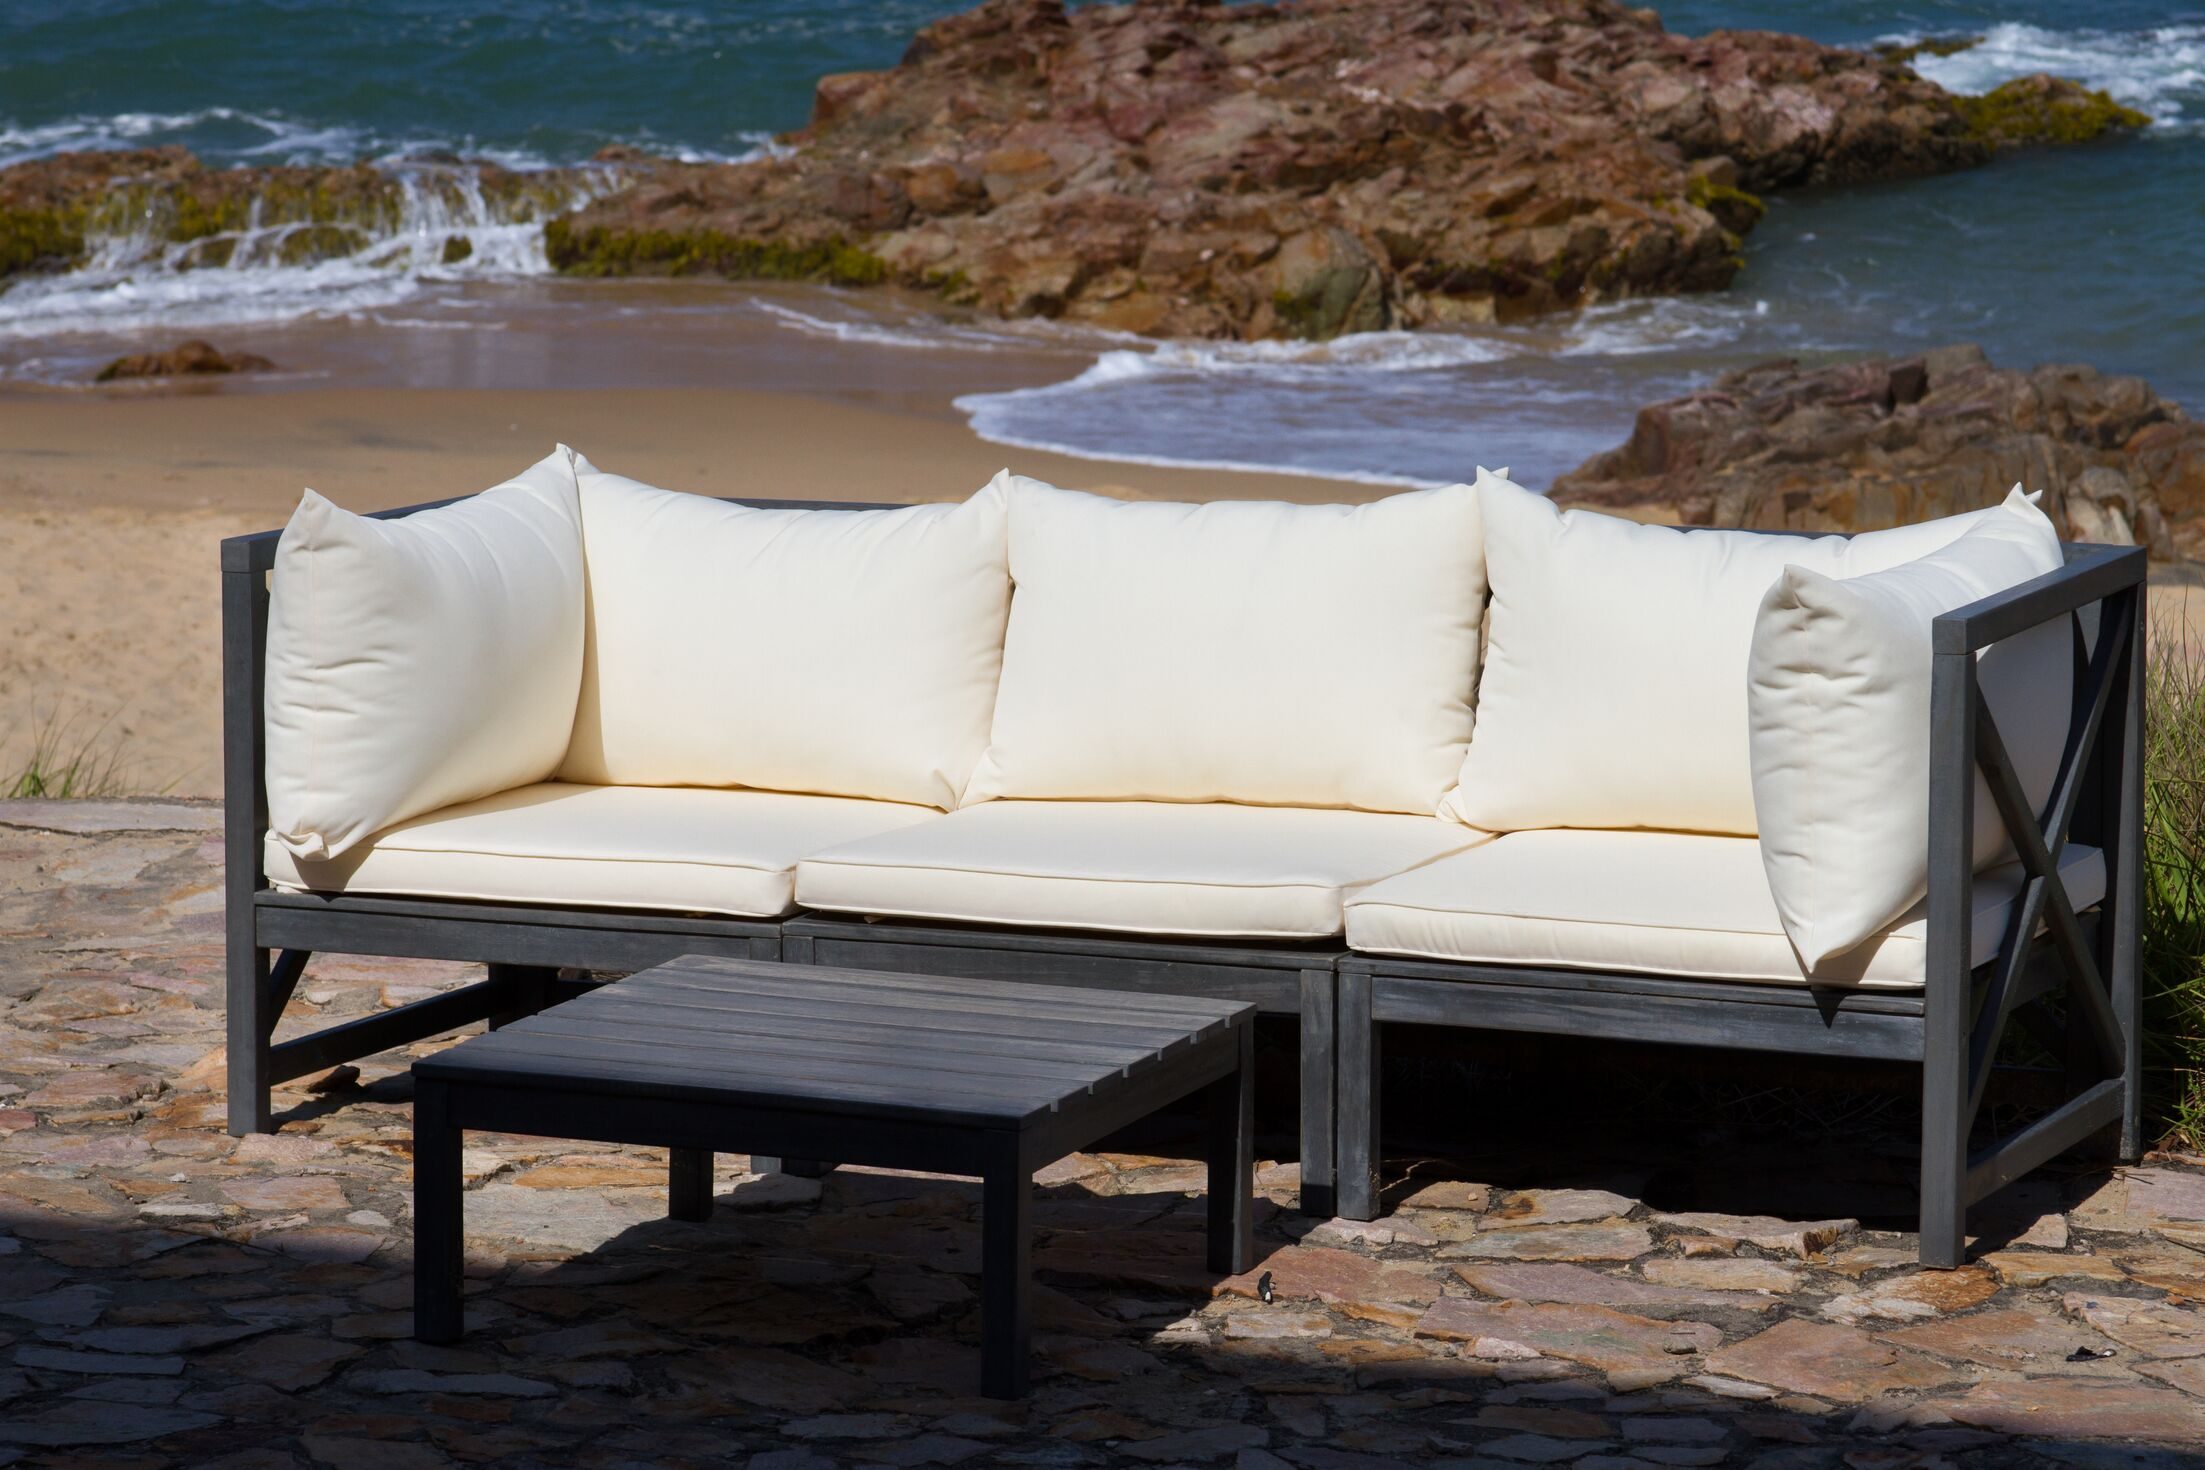 Sanibel 4 Piece Sectional Set with Cushions Cushon Color: Taupe, Color: Dark Slate Gray